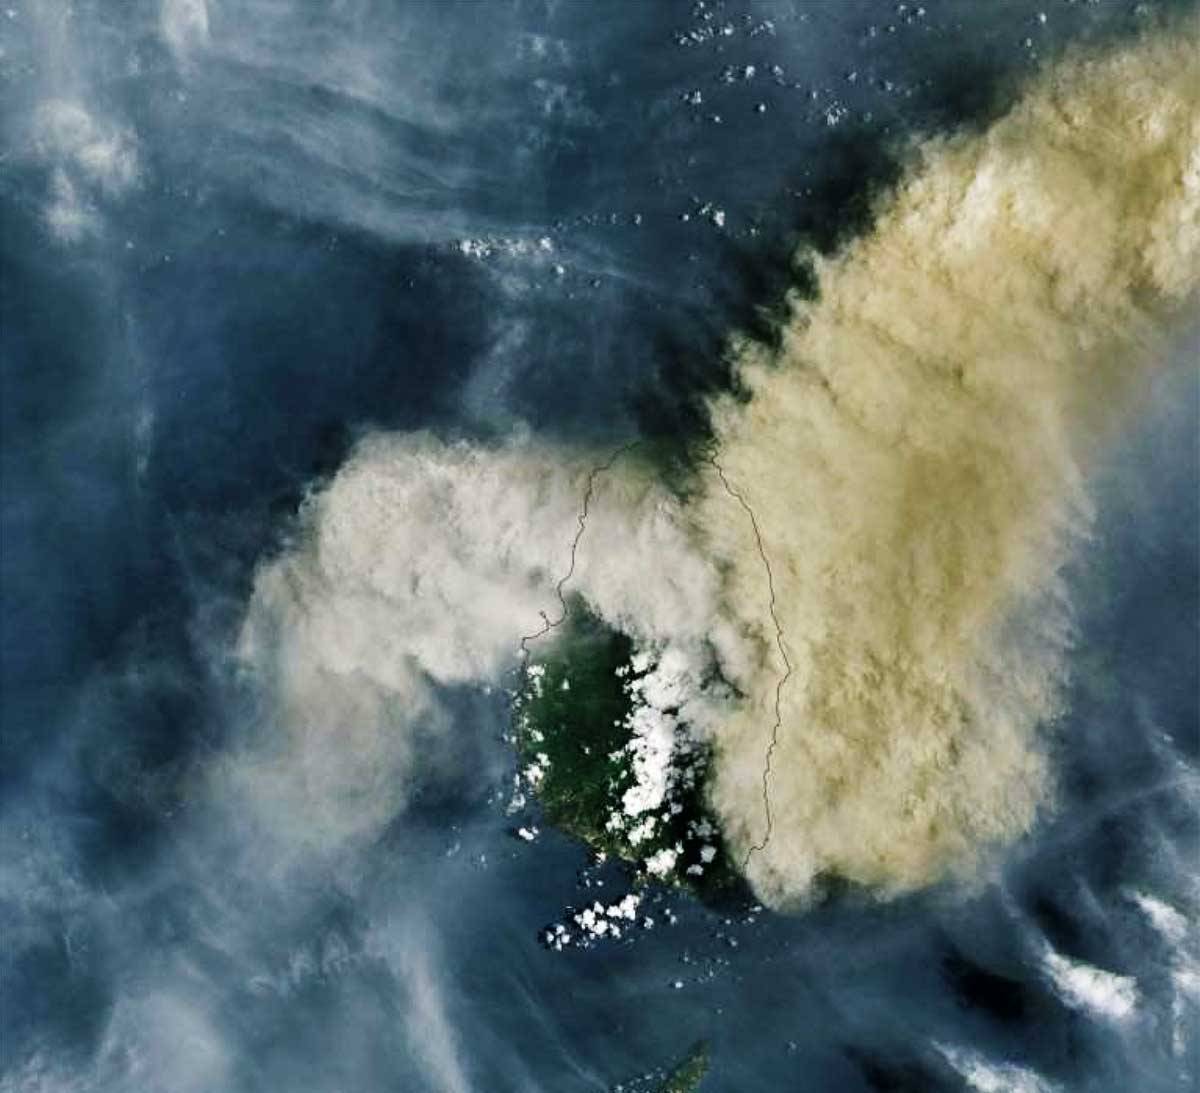 Image: © Handout A NASA Earth Observatory satellite image of the volcano eruption of the La Soufriere Volcano on the Caribbean island of St. Vincent.